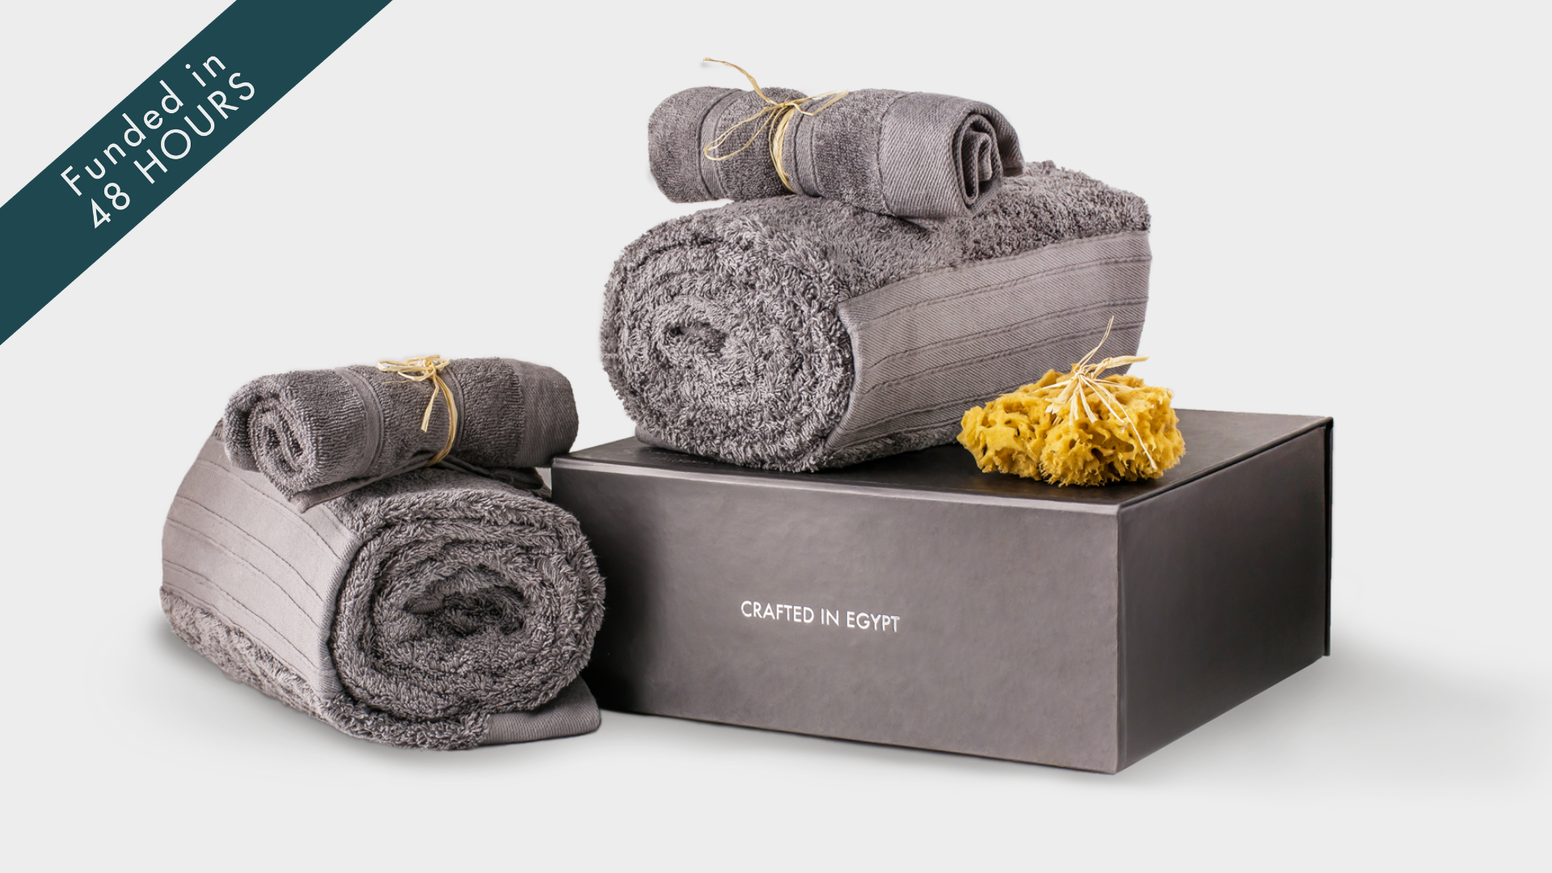 Luxury bath essentials at accessible prices. Ethically made in the Nile Delta.